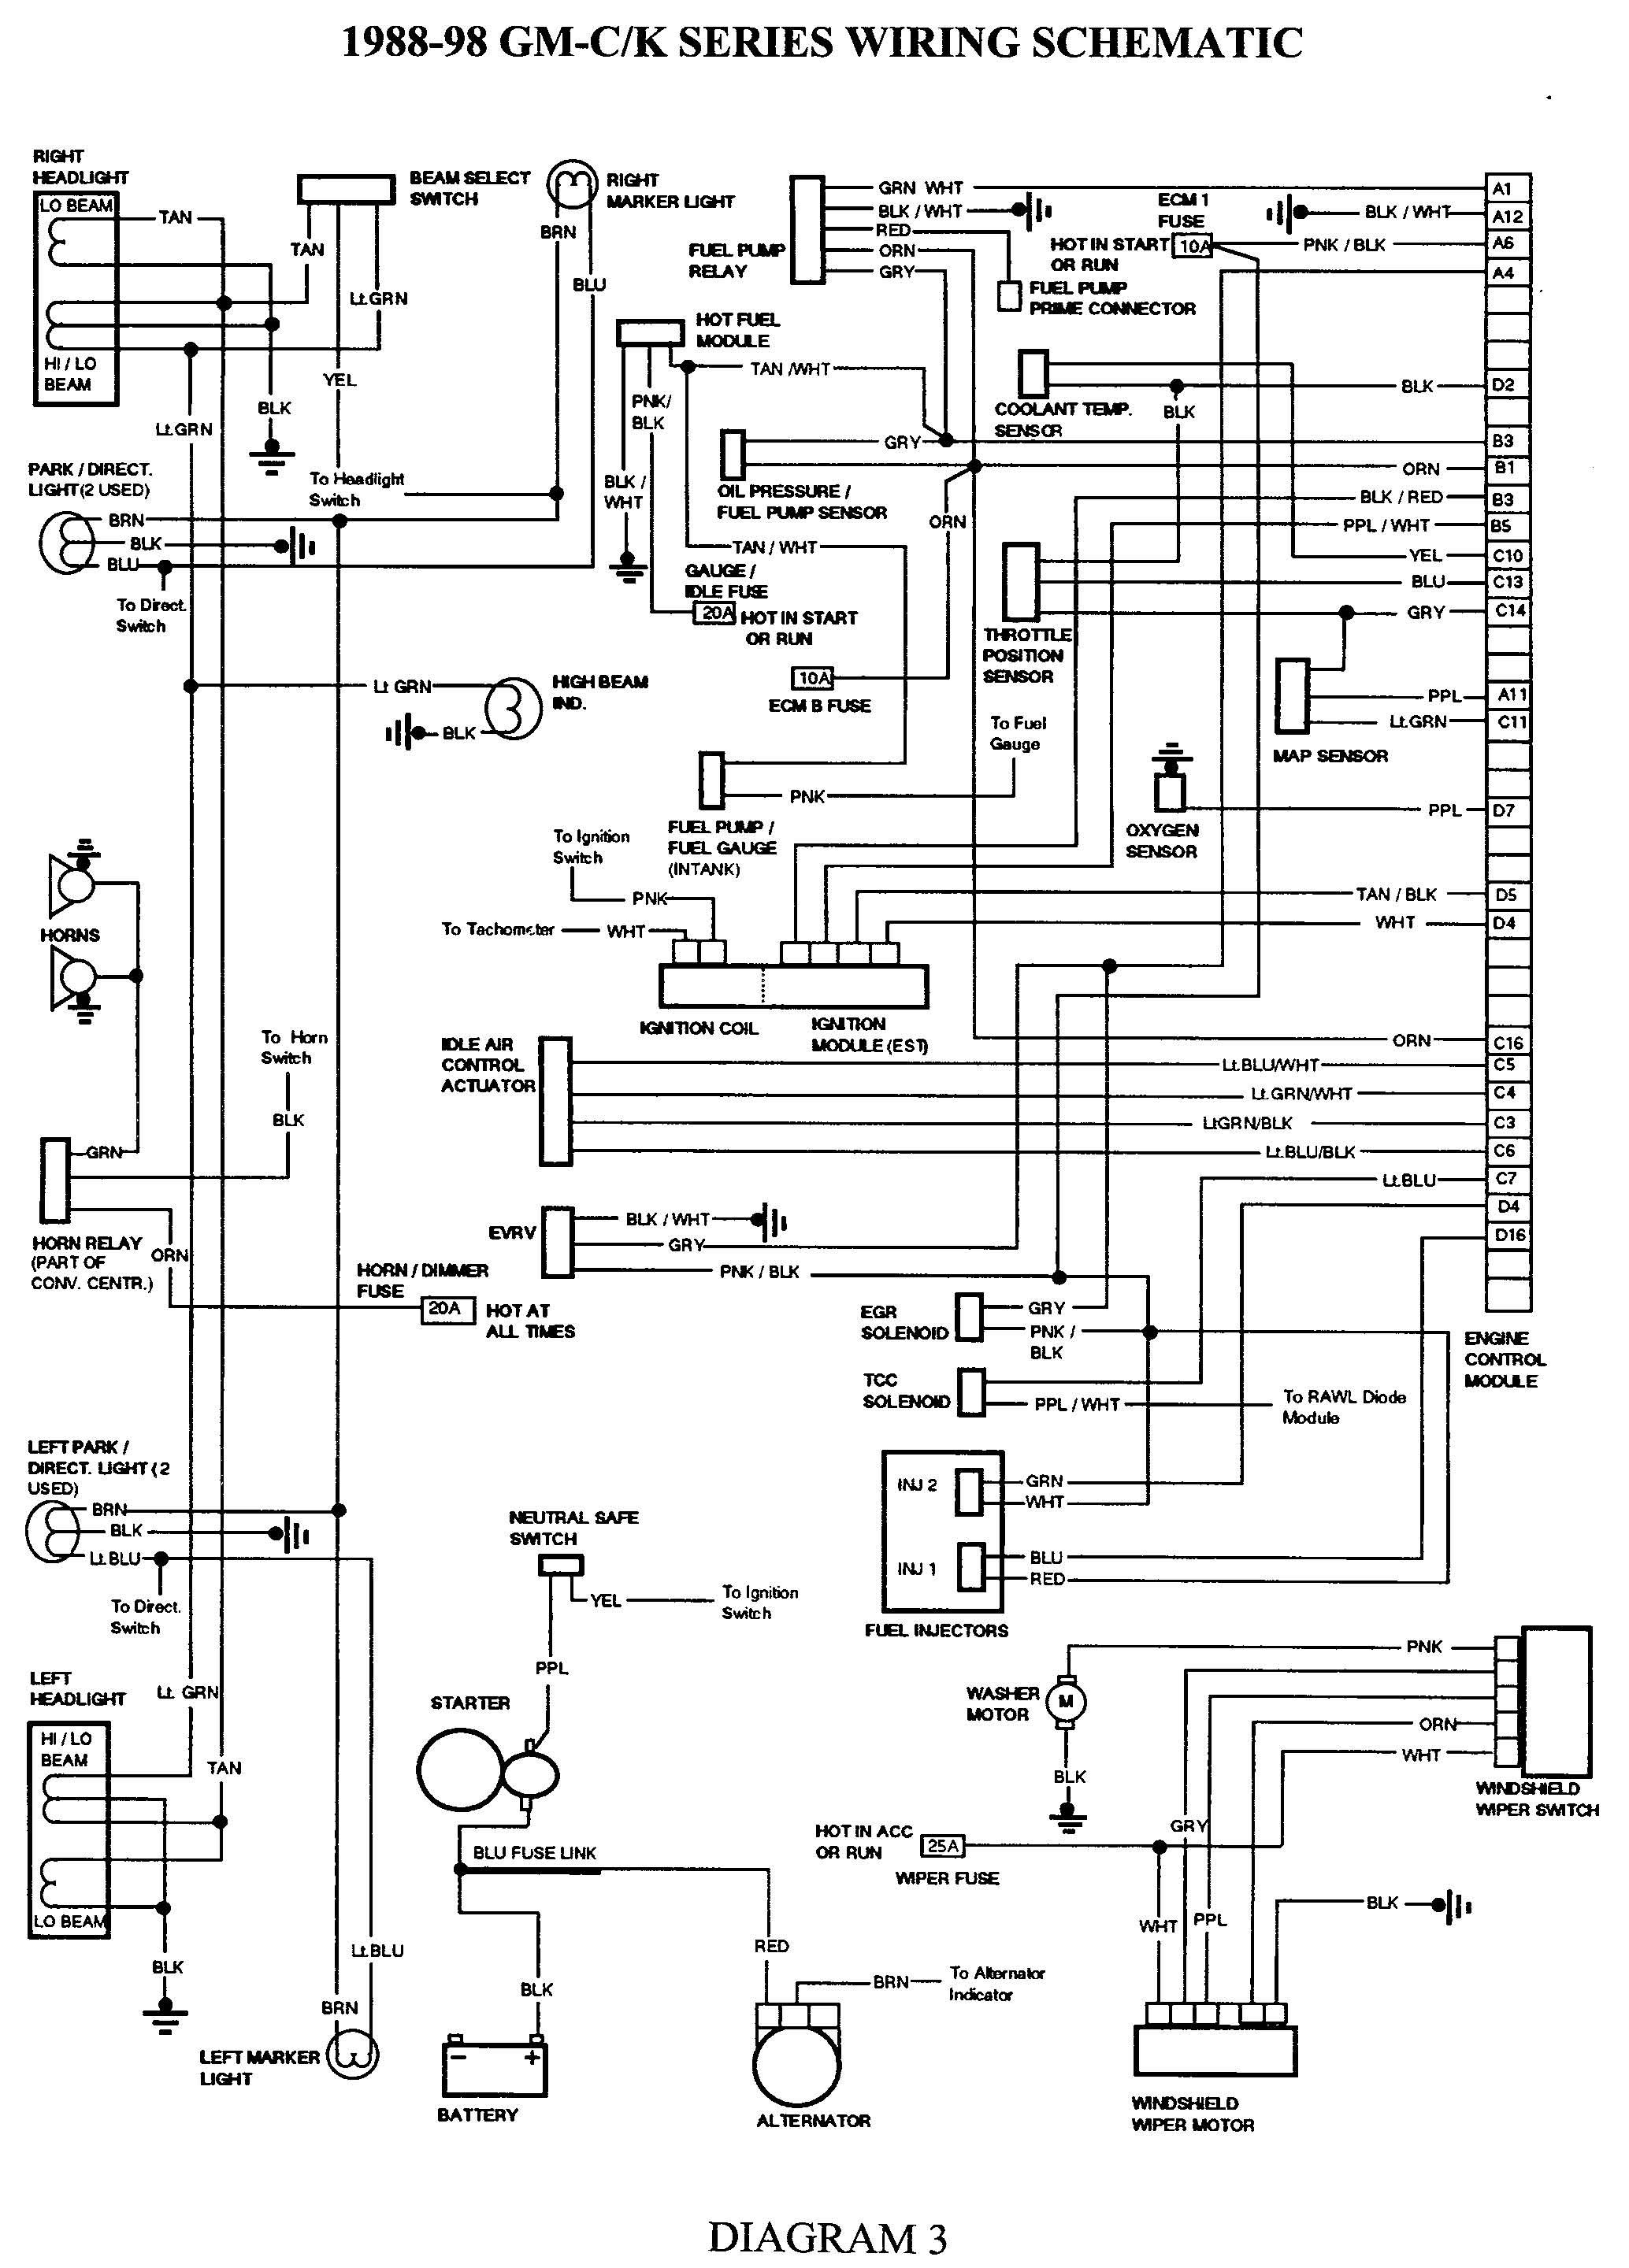 1994 Ford F150 Ignition Switch Wiring Diagram from i.pinimg.com